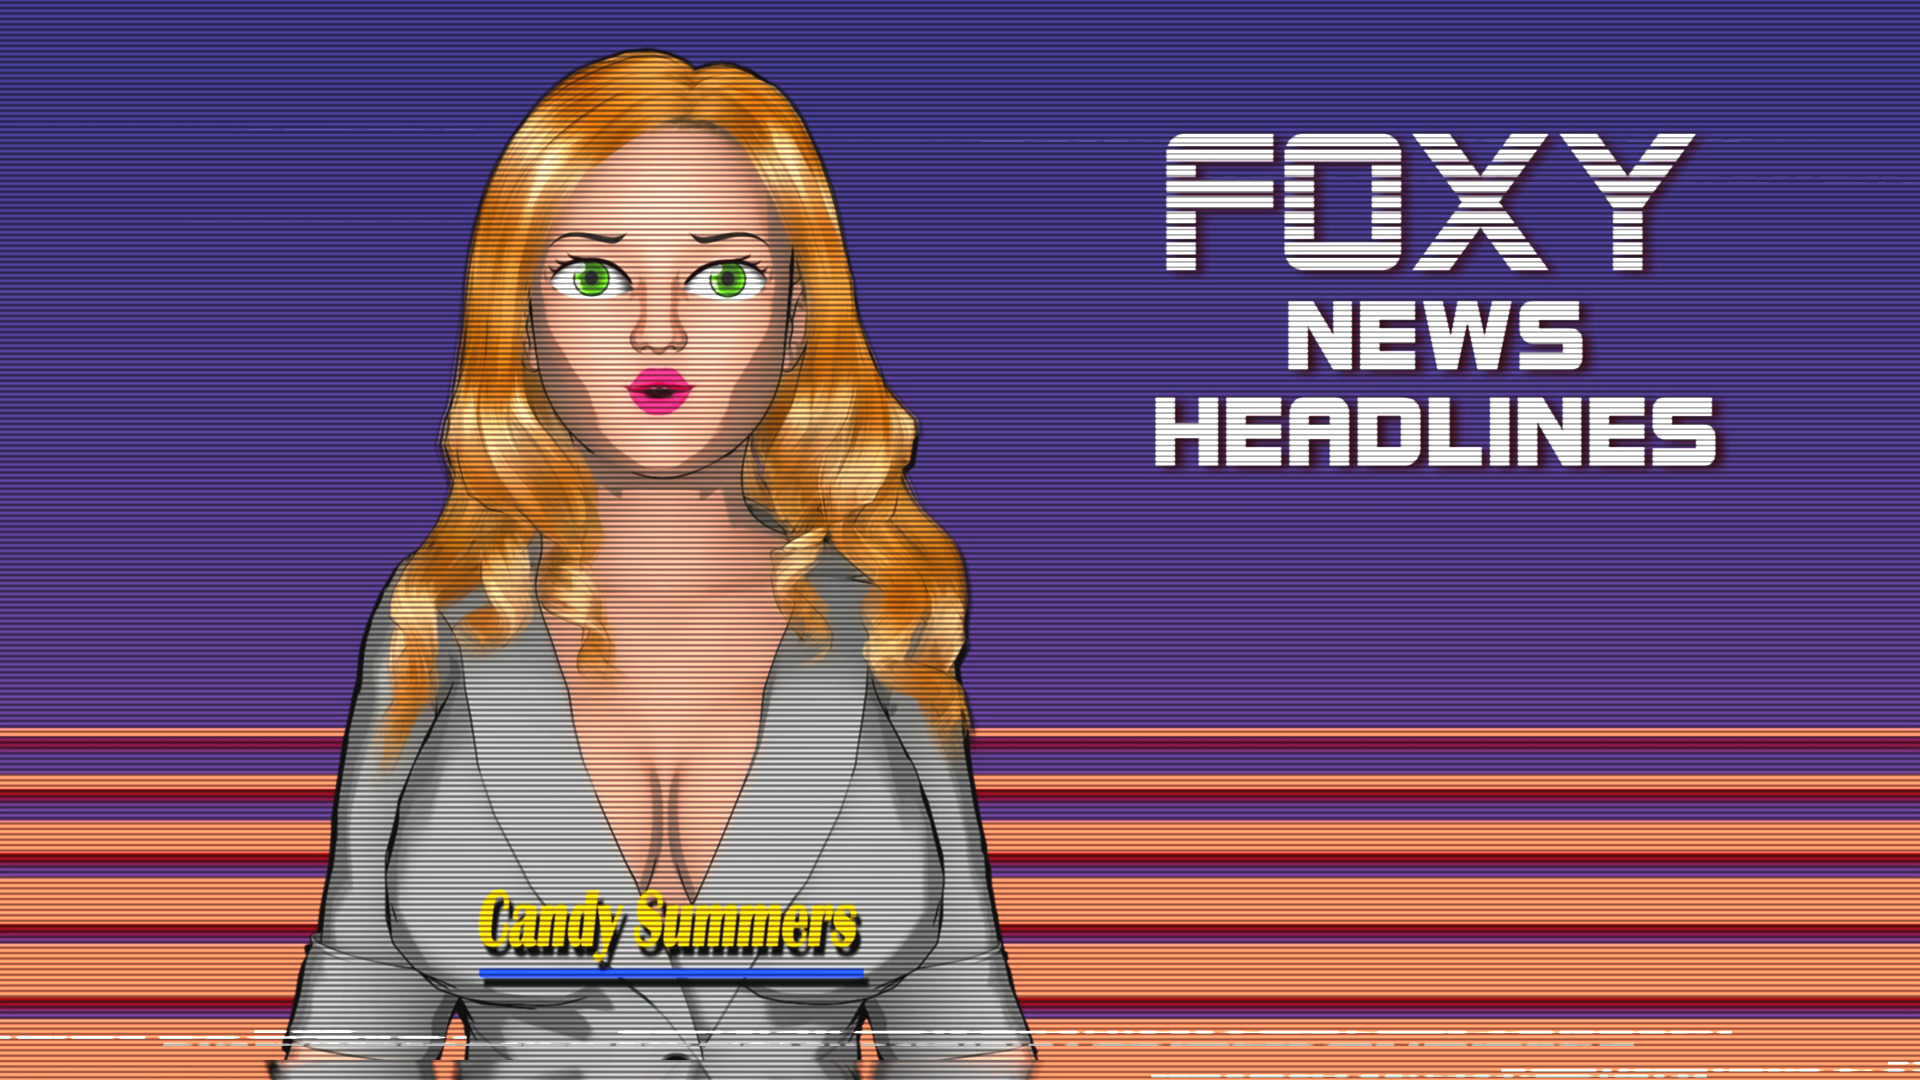 Retro Futuristic TV News Broadcast - FOXY News